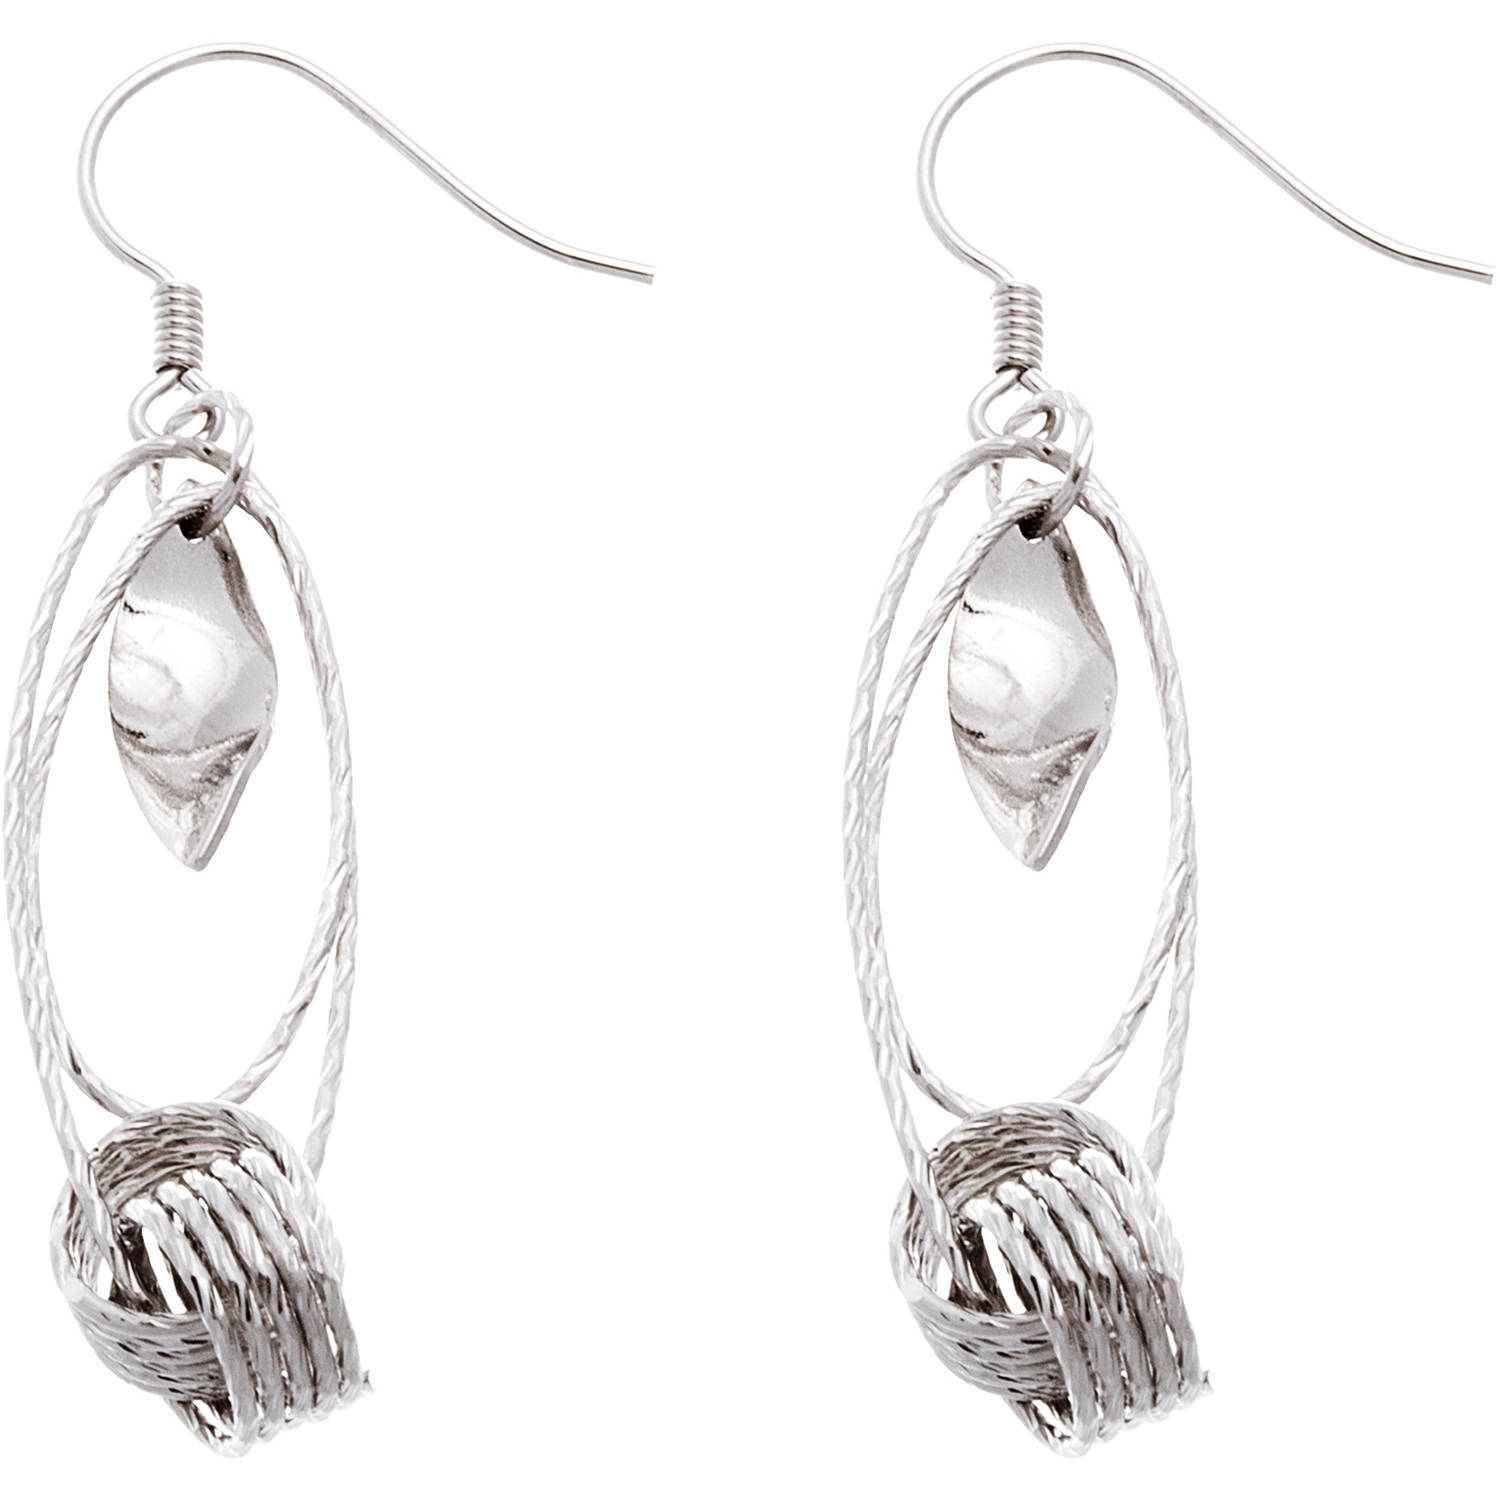 Angelique Silver 18kt White Gold over Sterling Silver Multi-Oval Dangling Earrings